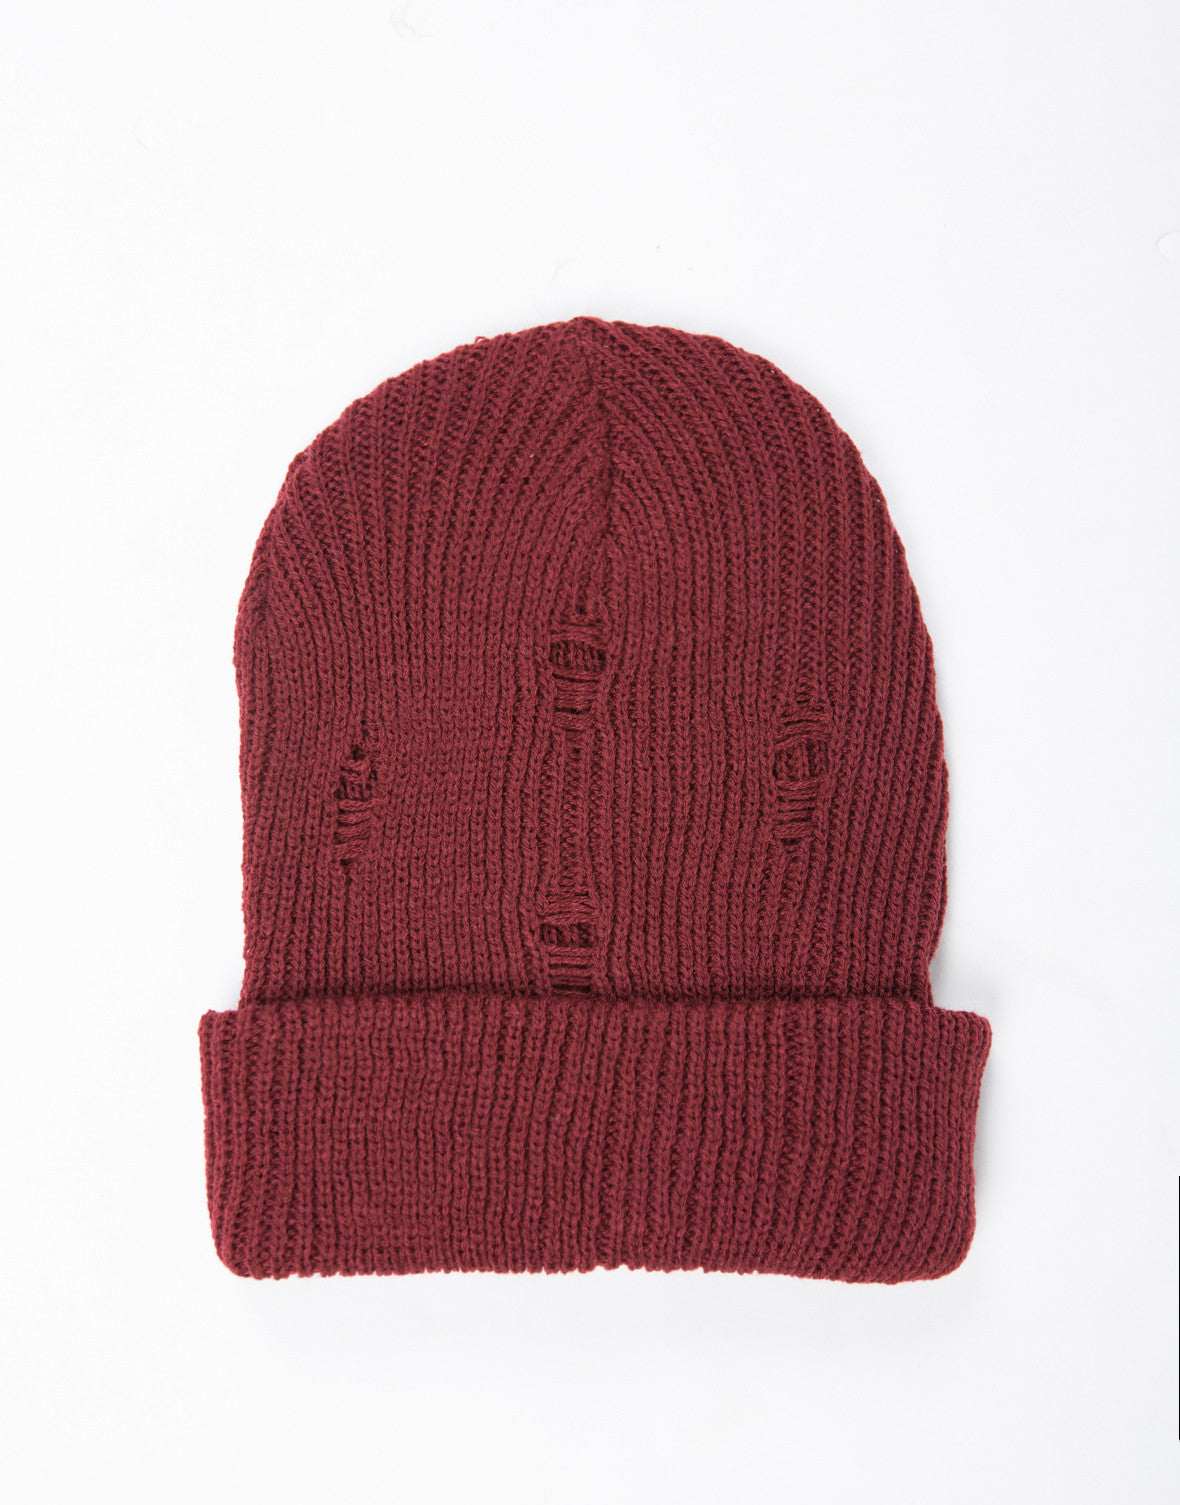 Shredded Knit Beanie